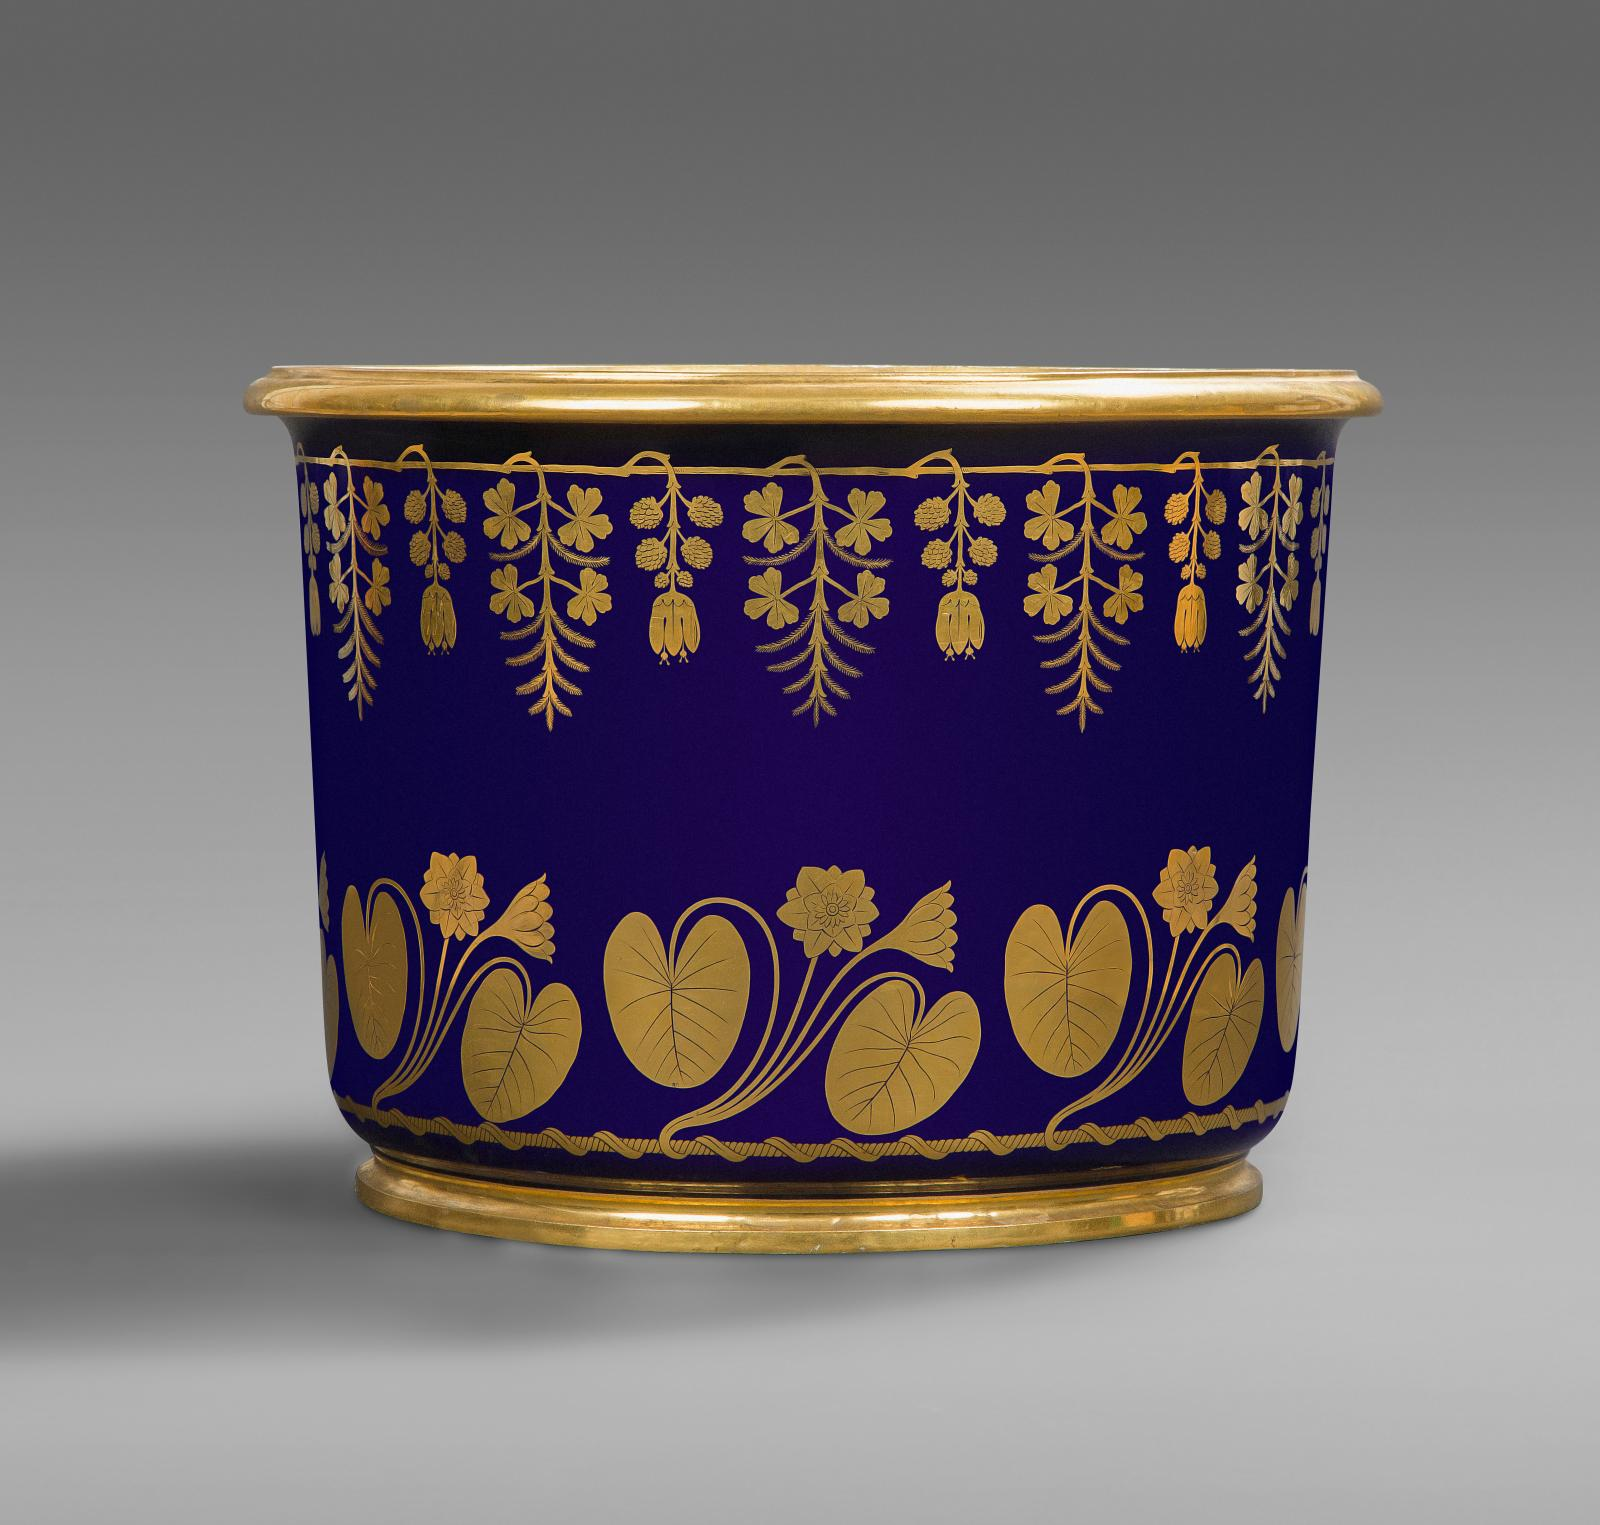 Sèvres, year XIII (November 1804-November 1805), large cylindrical foot basin, hard-paste porcelain with gold decoration on blue background, h. 35.5 c